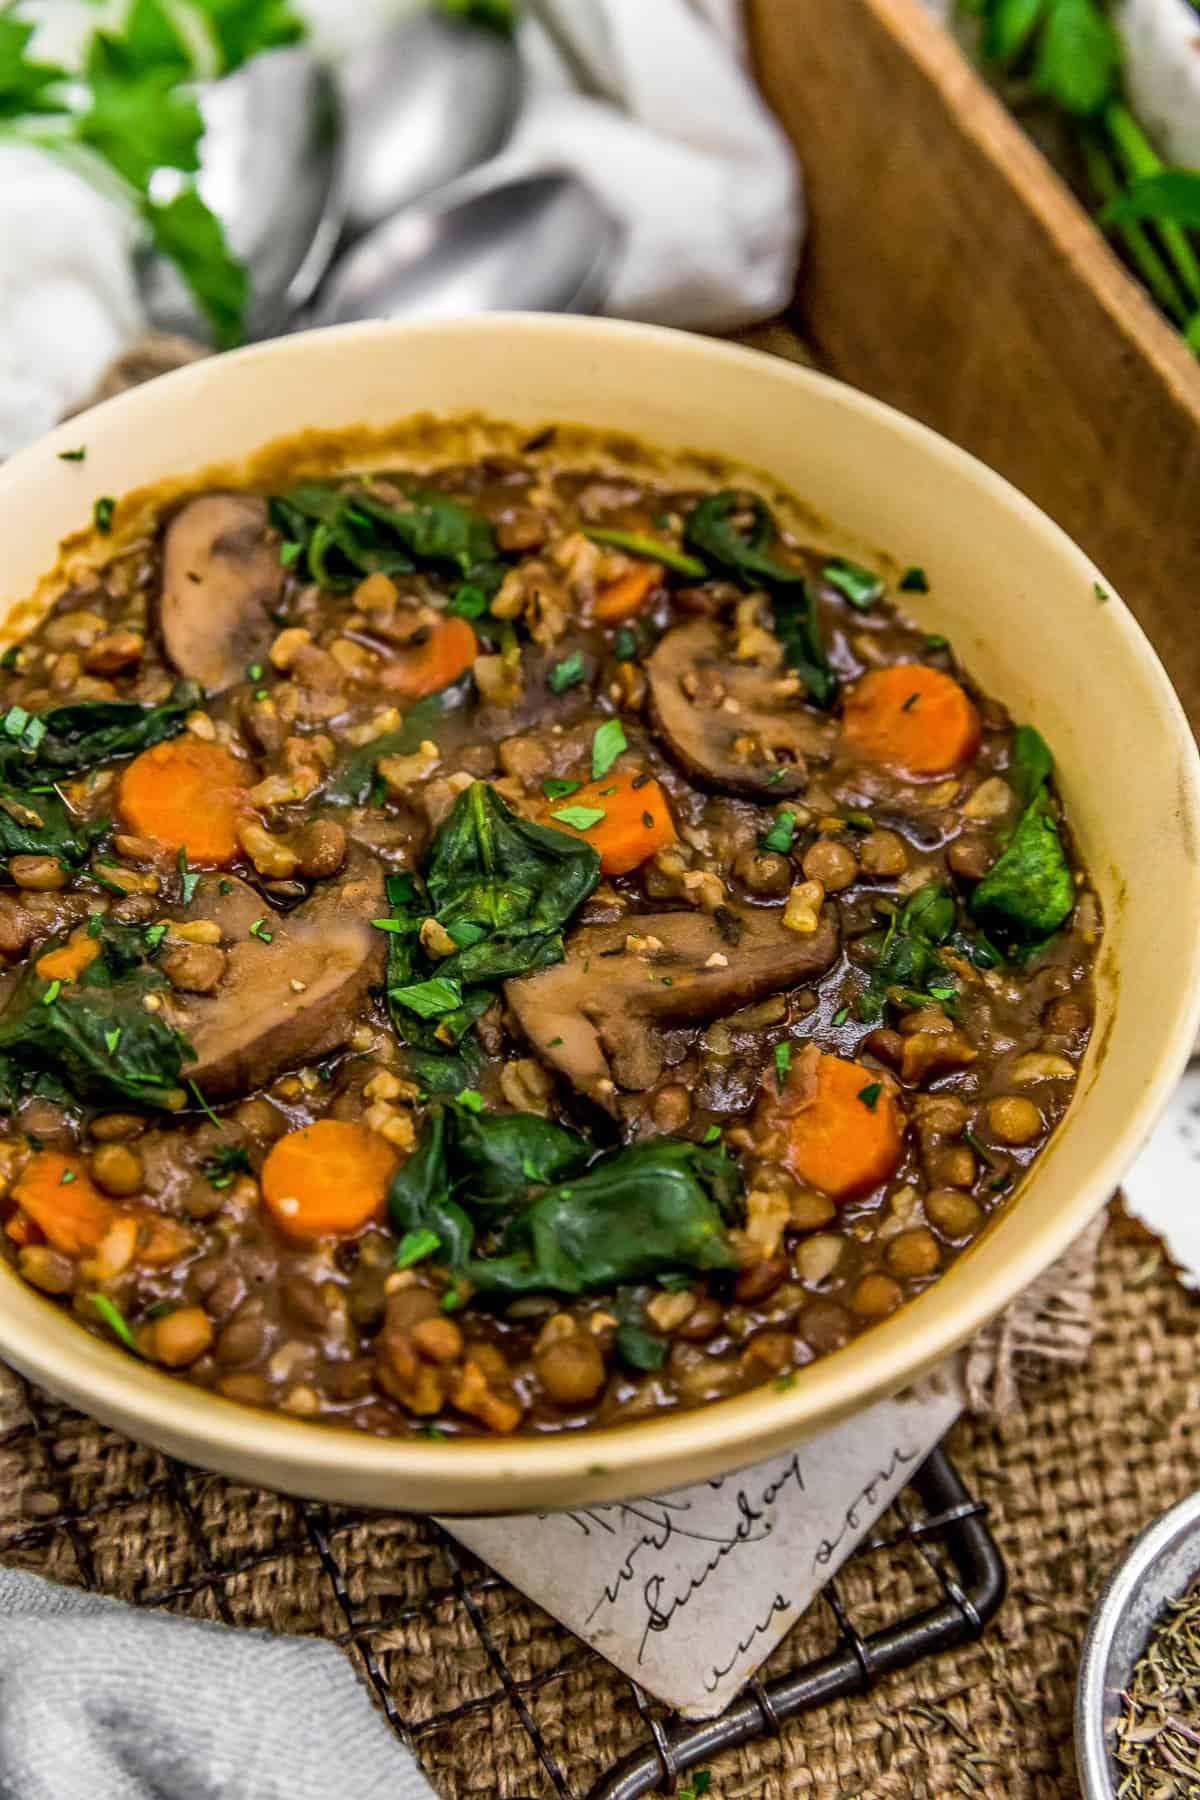 French Lentil Rice Mushroom Stew in a bowl